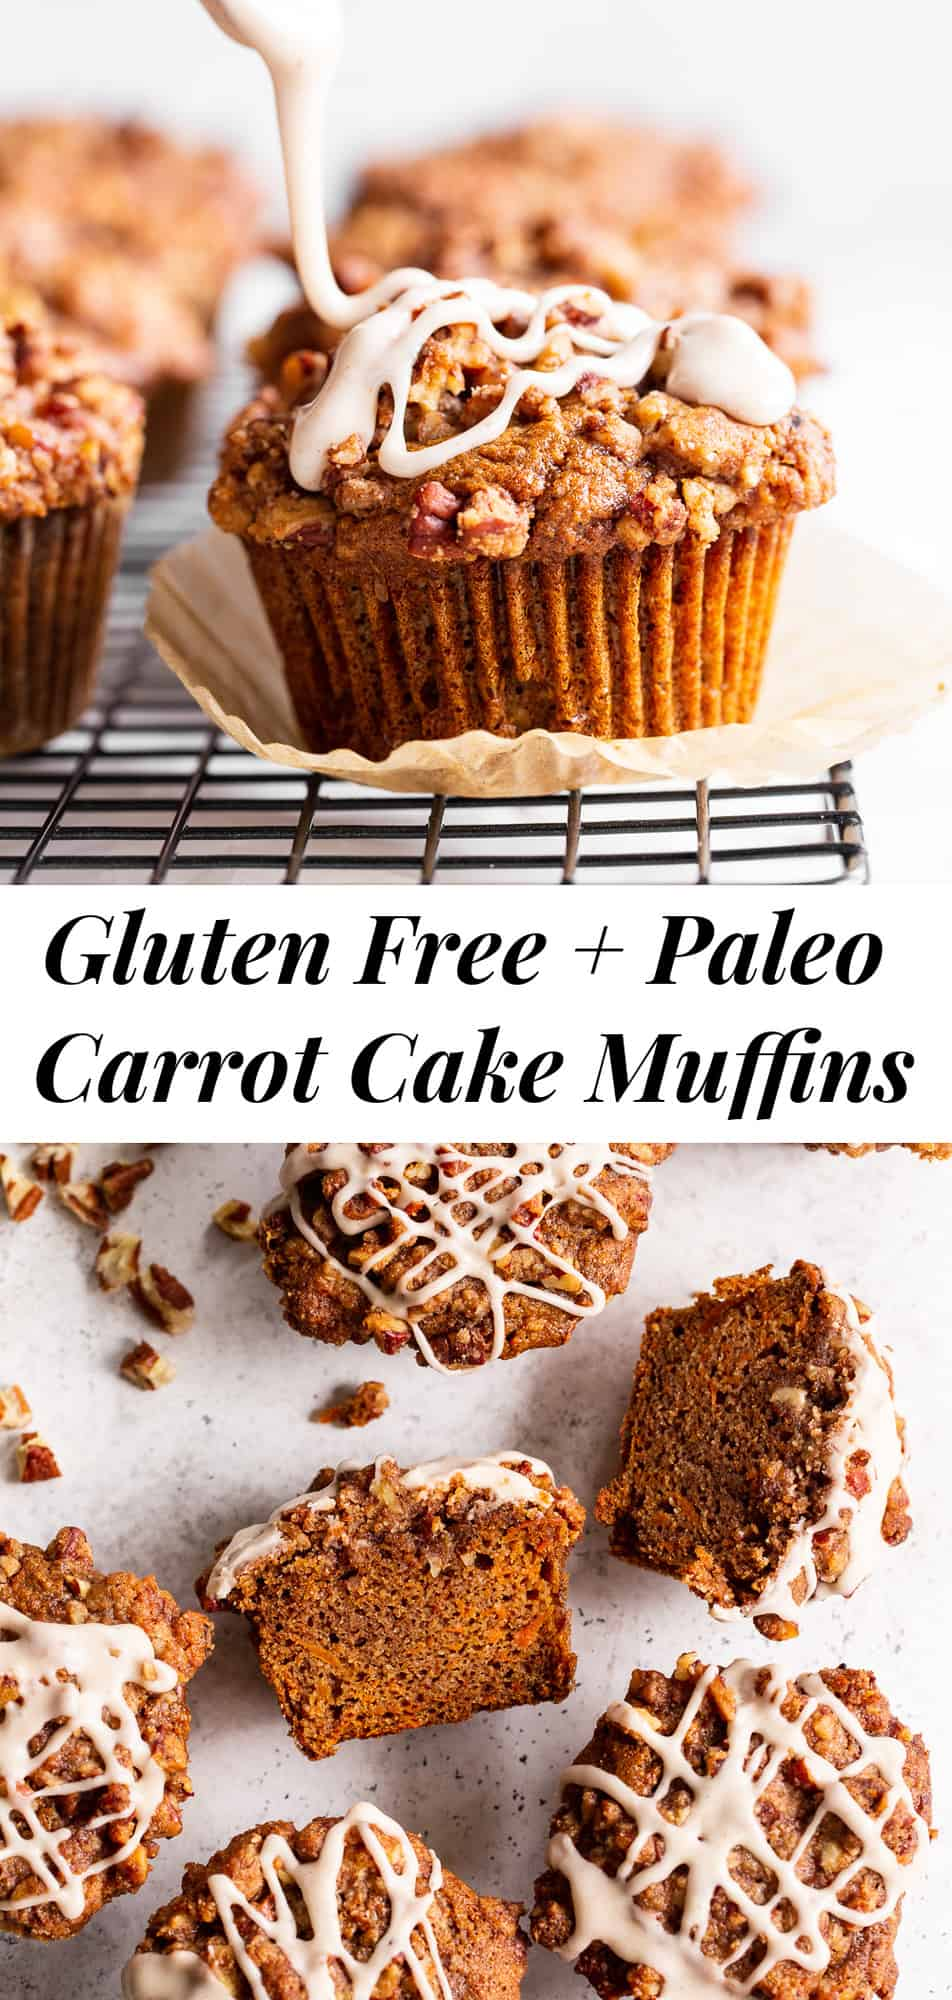 Sweet and moist, with lots of warm spices and an irresistible cinnamon pecan crumb topping, these carrot muffins are sure to become a favorite! They're perfect to serve at brunch or making ahead of time as a grab and go breakfast or snack. Gluten-free, dairy-free, paleo, and family approved! #paleo #glutenfree #carrotcake #paleobaking #glutenfreebaking #cleaneating